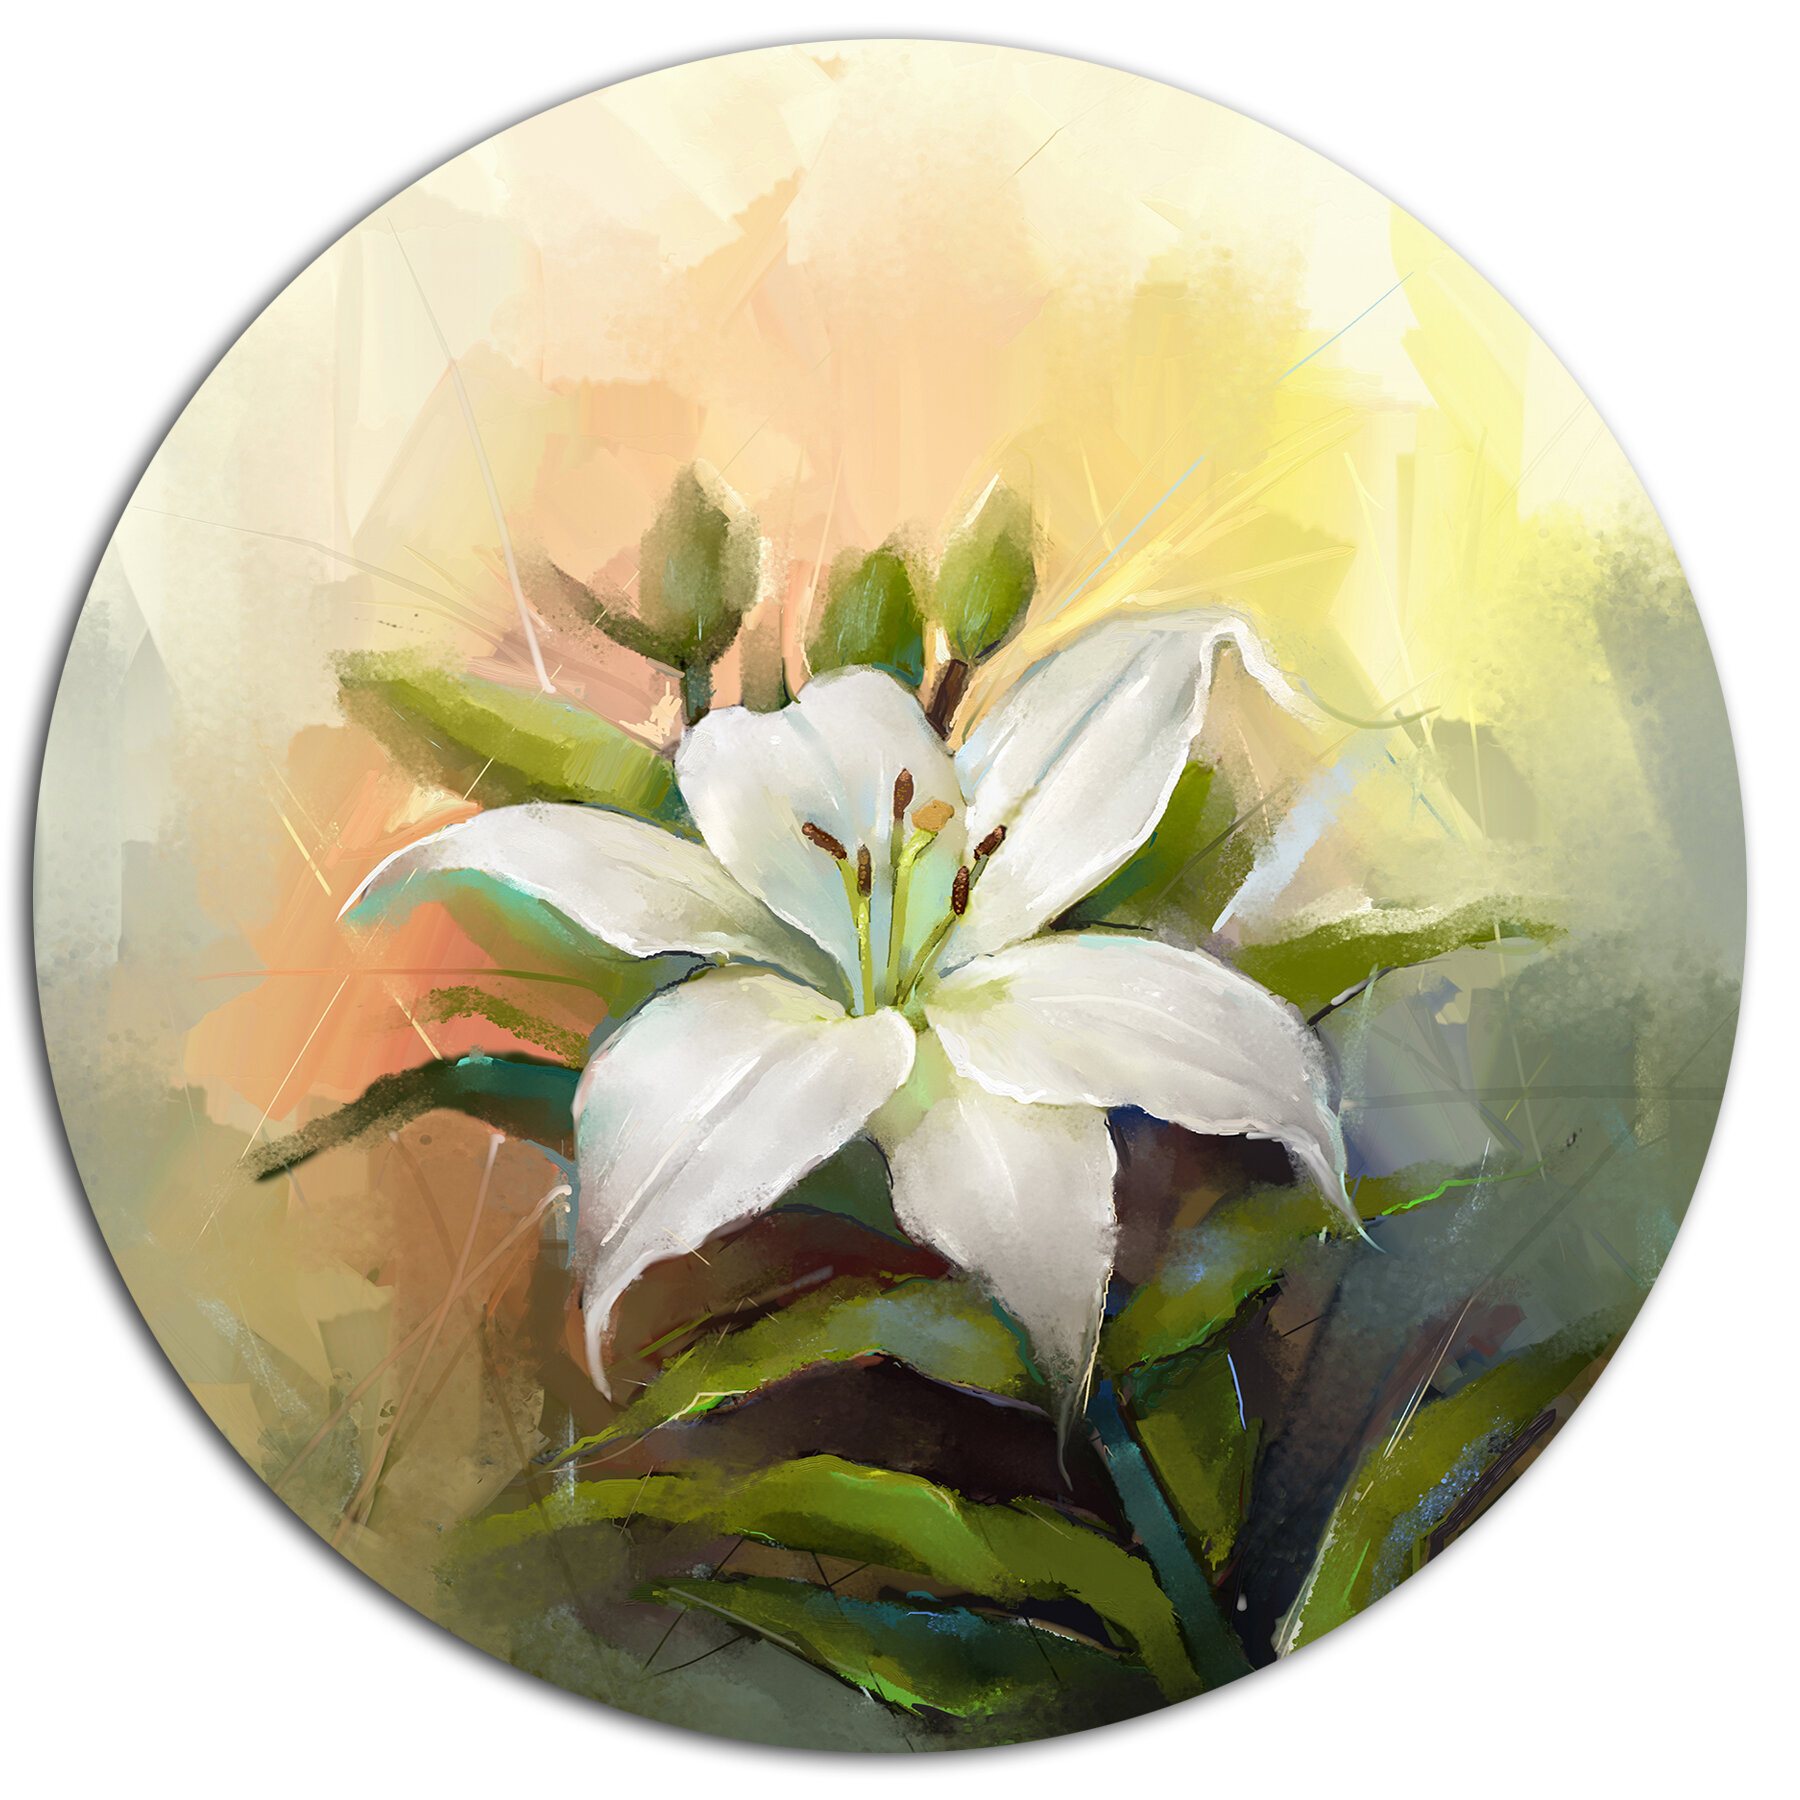 Designart white lily flower oil painting oil painting print on designart white lily flower oil painting oil painting print on metal wayfair izmirmasajfo